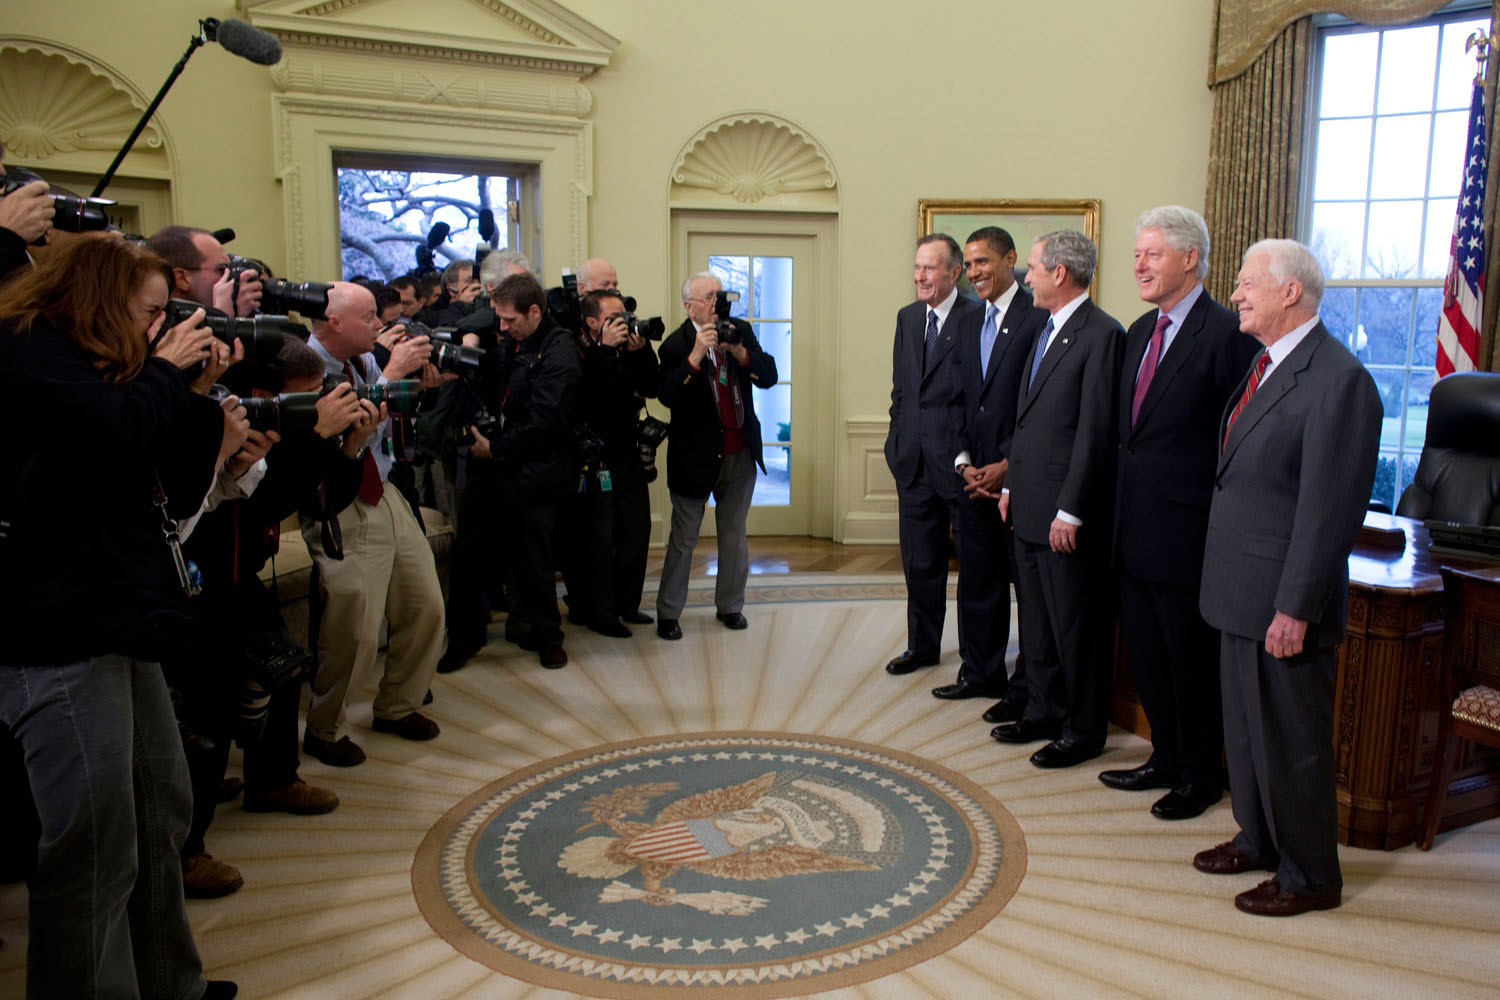 Photographers gather around President George W. Bush, President George H.W. Bush, President-elect Barack Obama, President Bill Clinton, and President Jimmy Carter, January 7, 2009.